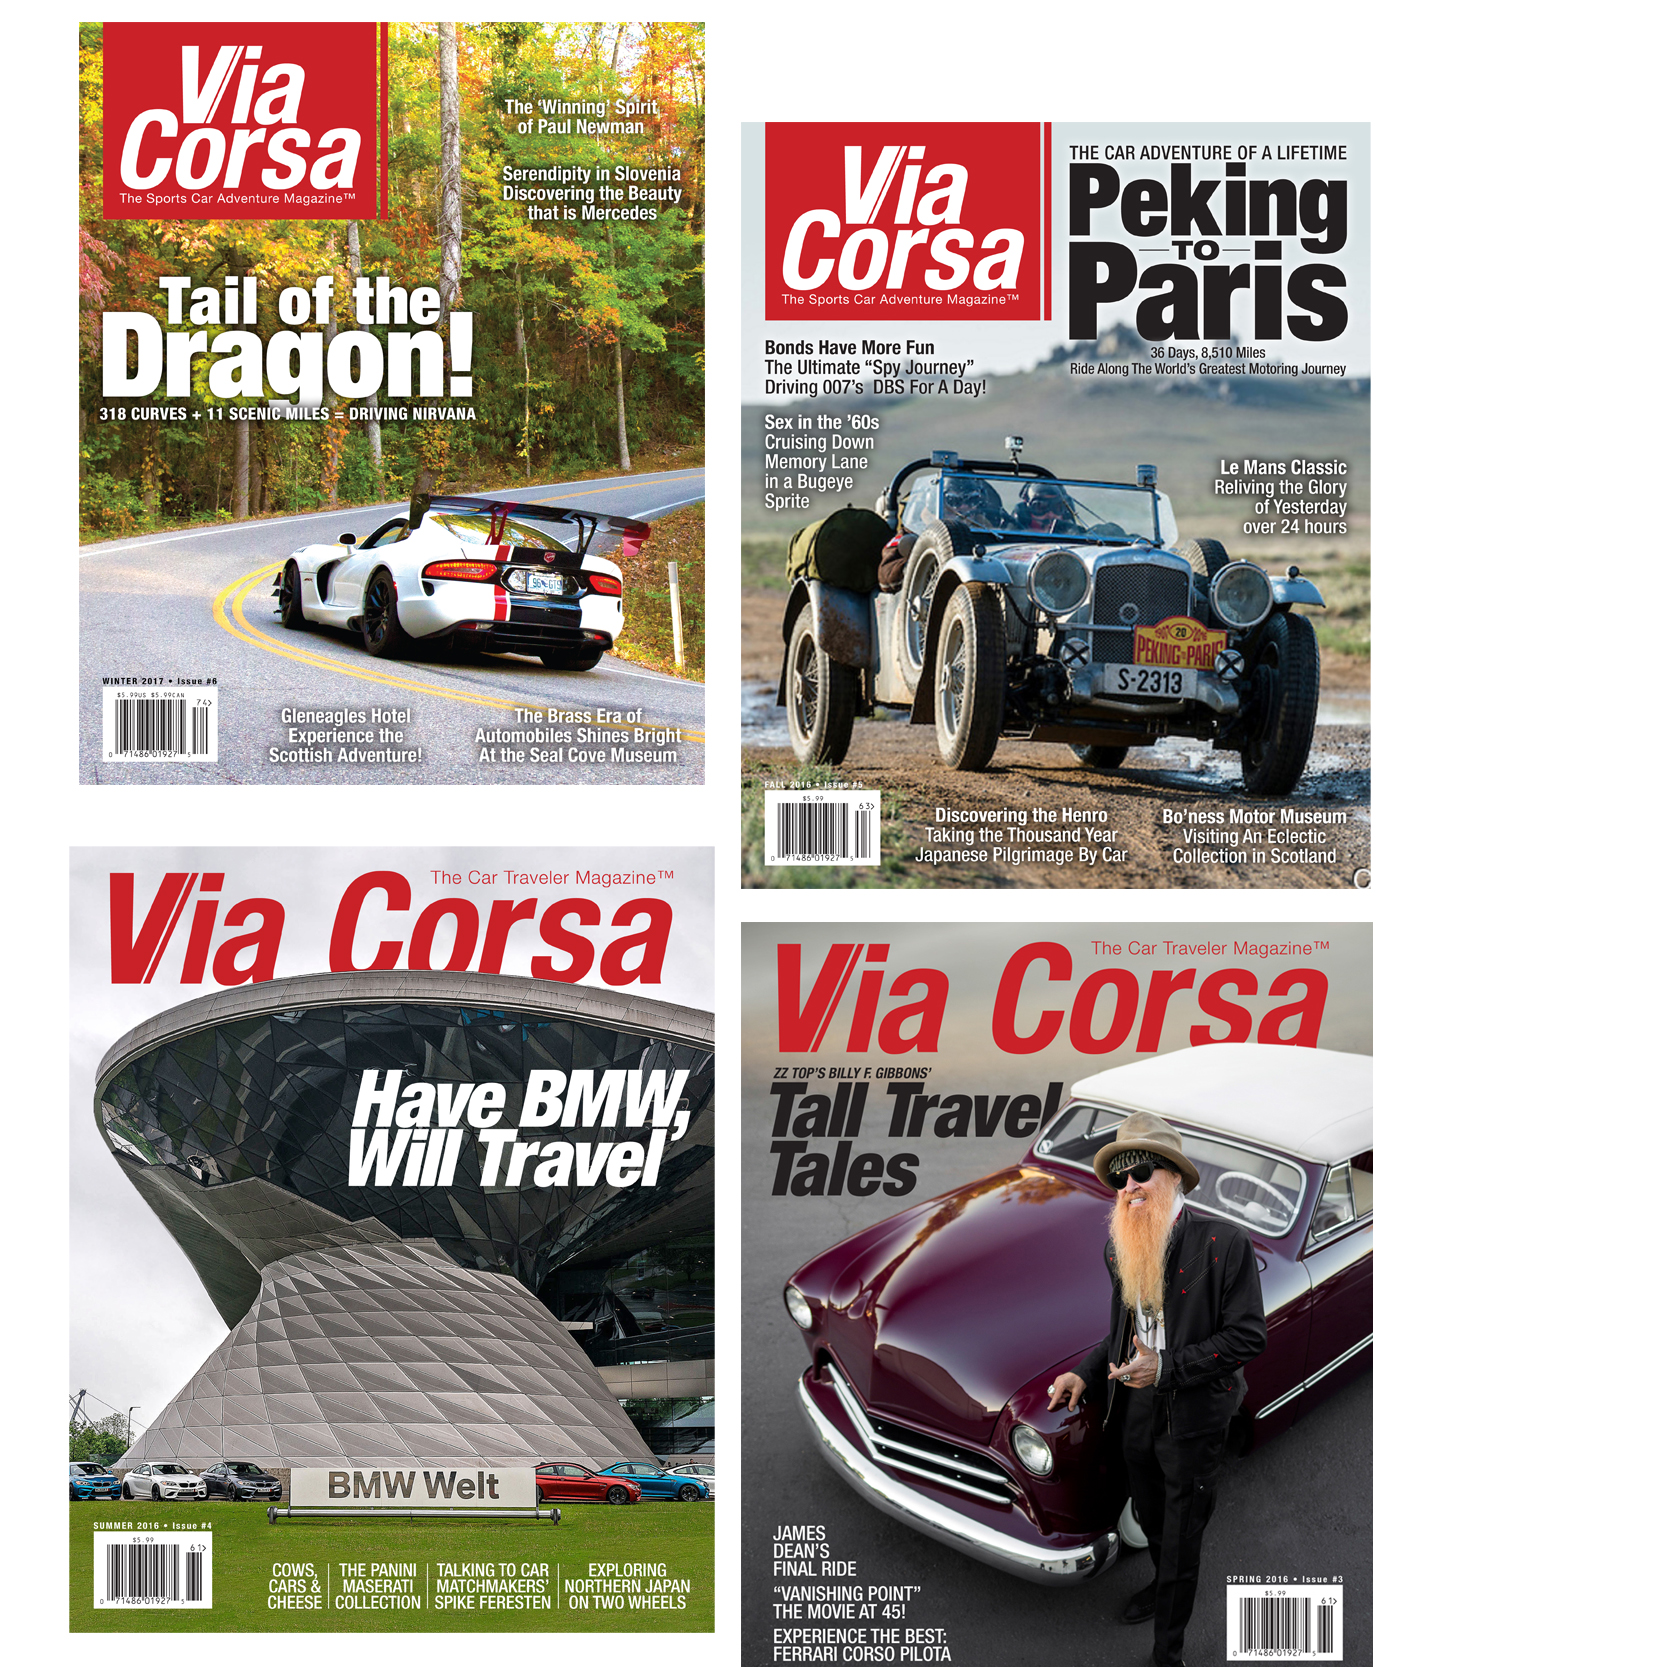 Via Corsa Magazine 1-Year Subscription - U.S. Only - Via Corsa